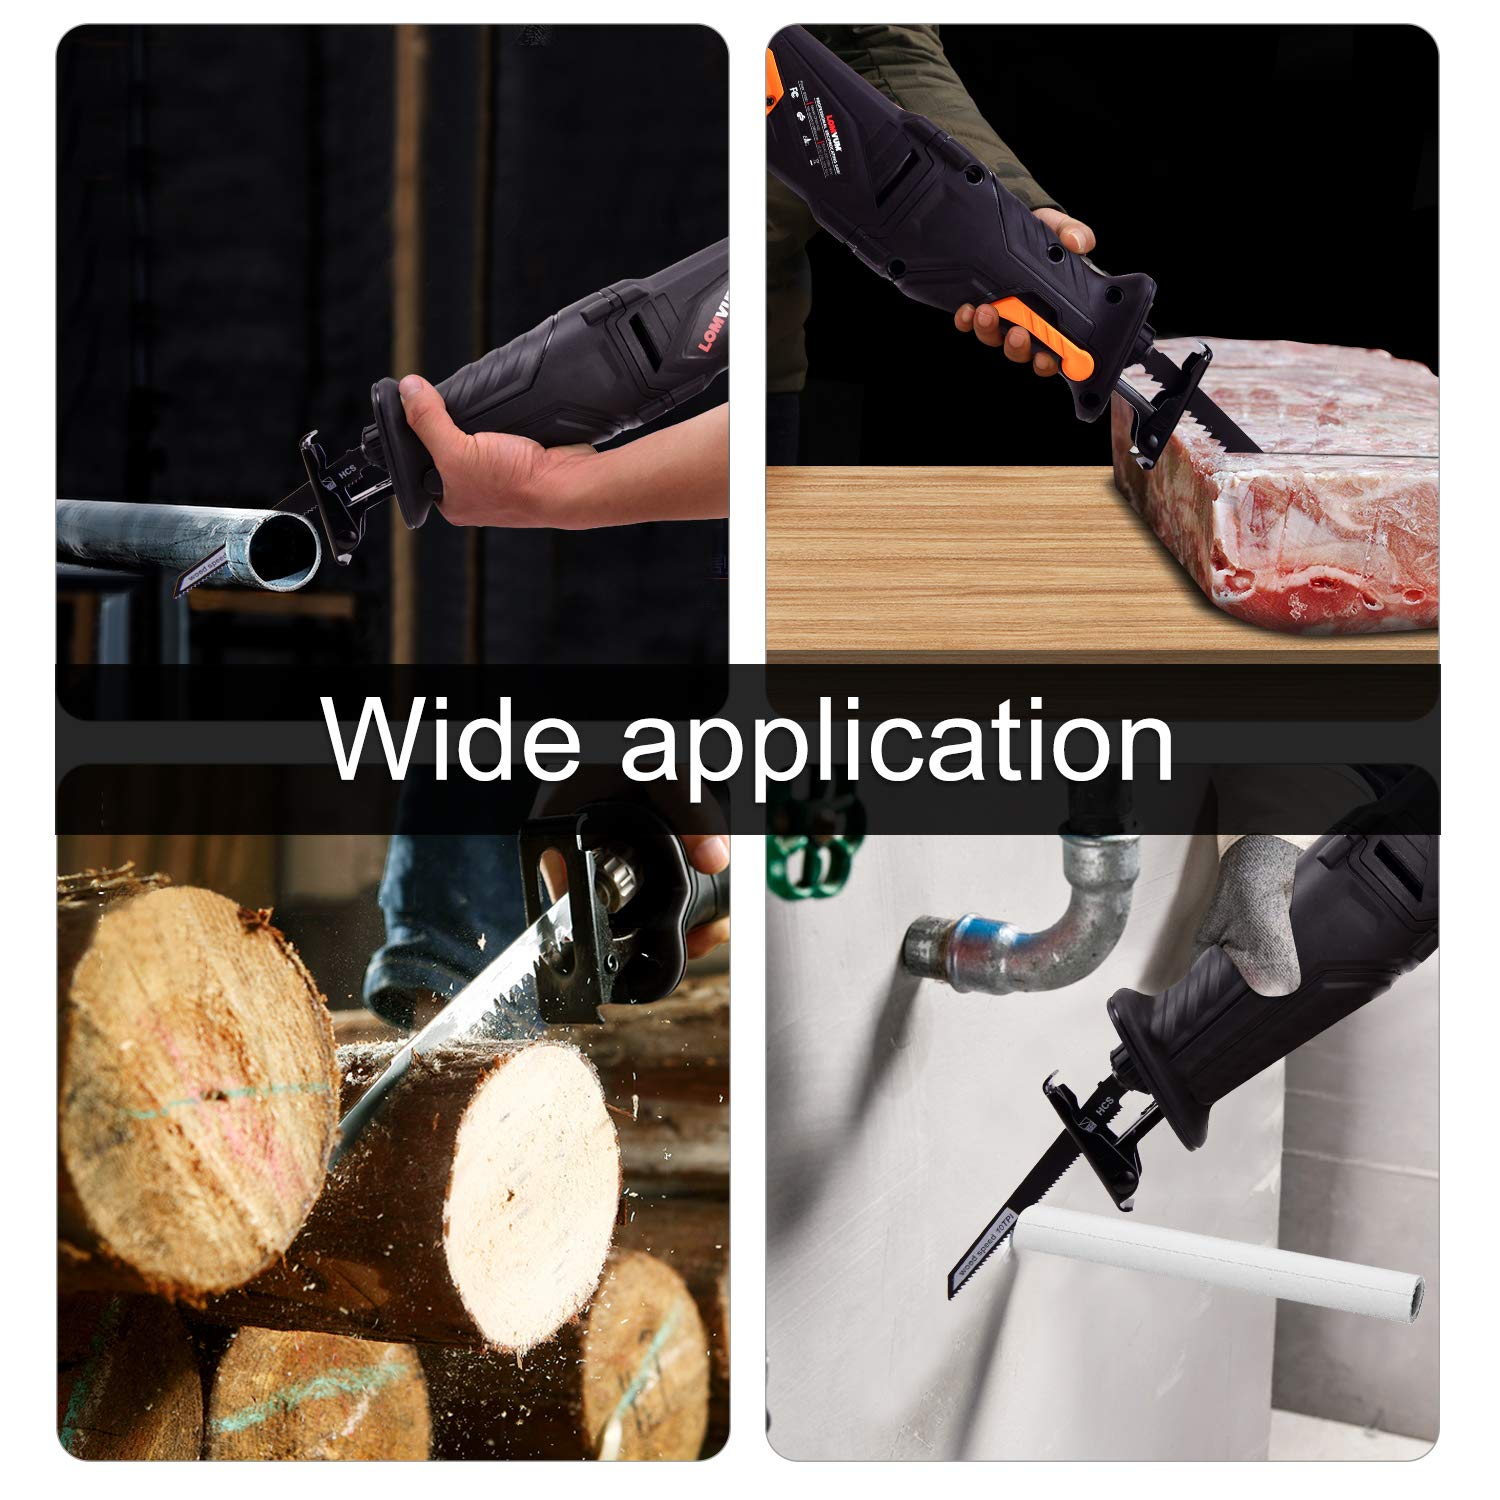 0~2800SPM Variable Speed Trigger 28mm and LED Lights 1-1//8 Sawzall with Anti-Vibration Handle Wood 4T and 10T HCS, Metal 18T BIM Stroke Length LOMVUM 7 Amp Corded Reciprocating Saw 4 Blades